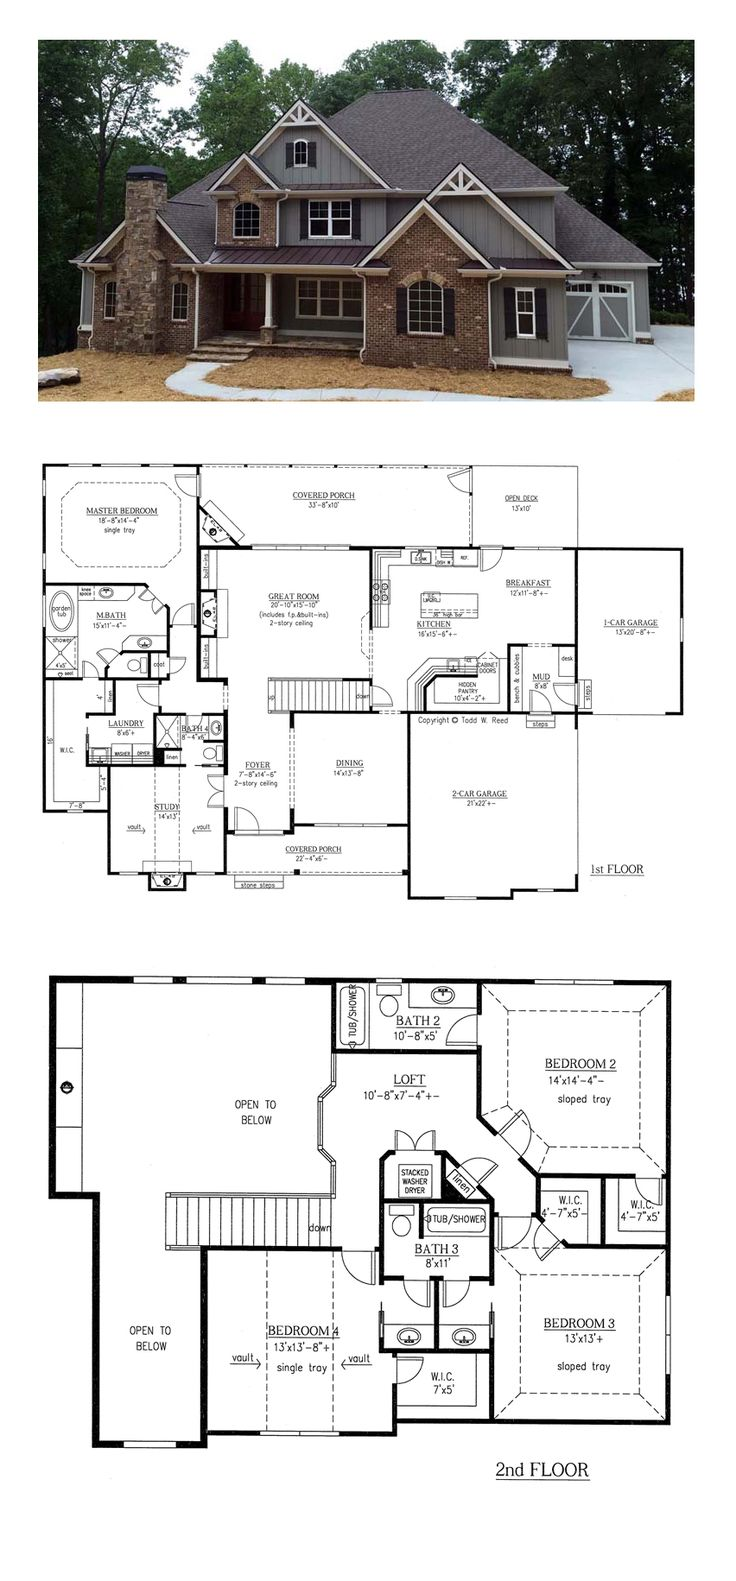 Best 25 dream house plans ideas on pinterest house for House plans for family of 4